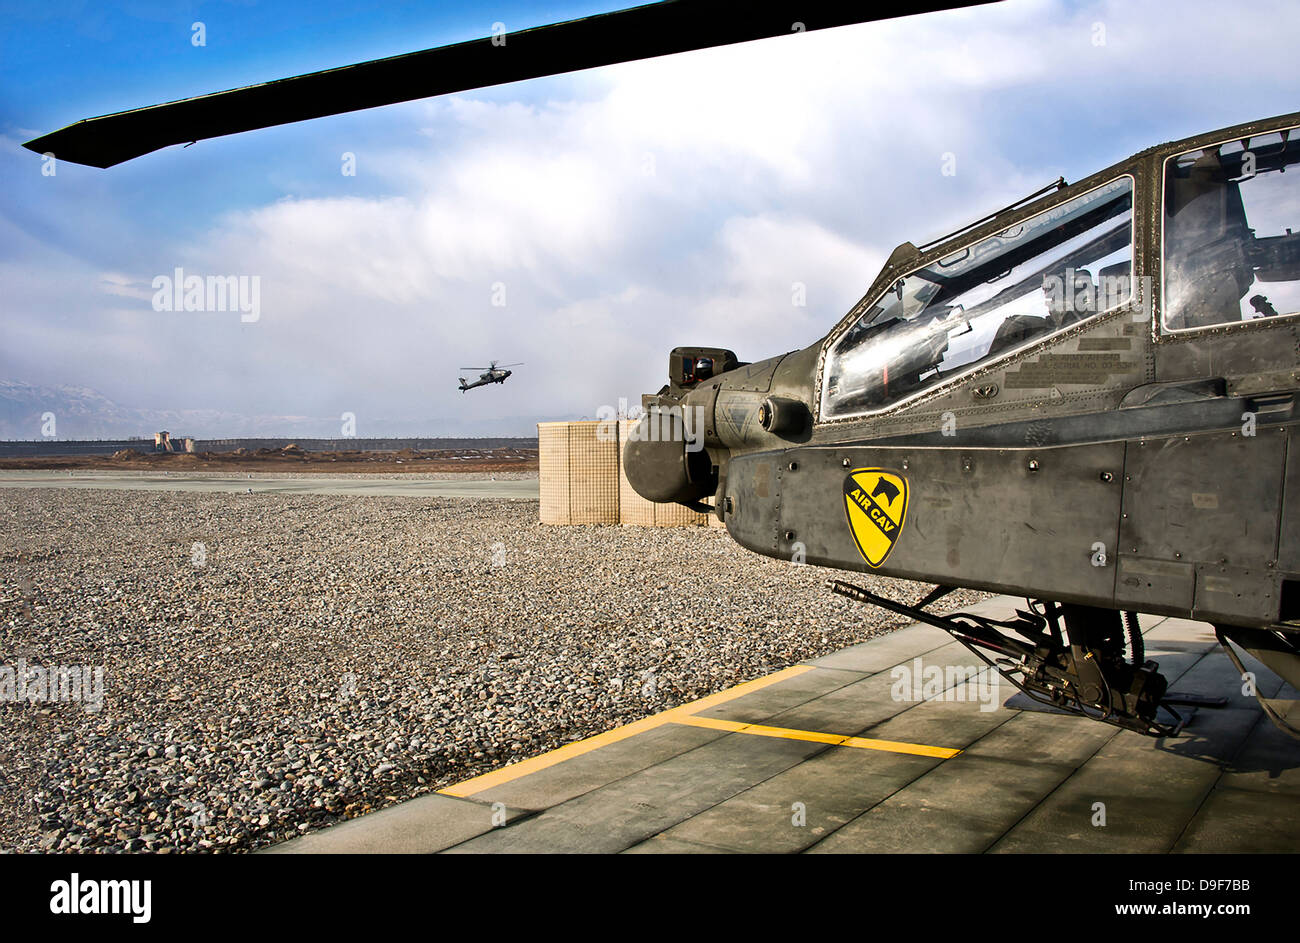 An AH-64D Apache helicopter comes in for a landing at a military base in Afghanistan. - Stock Image